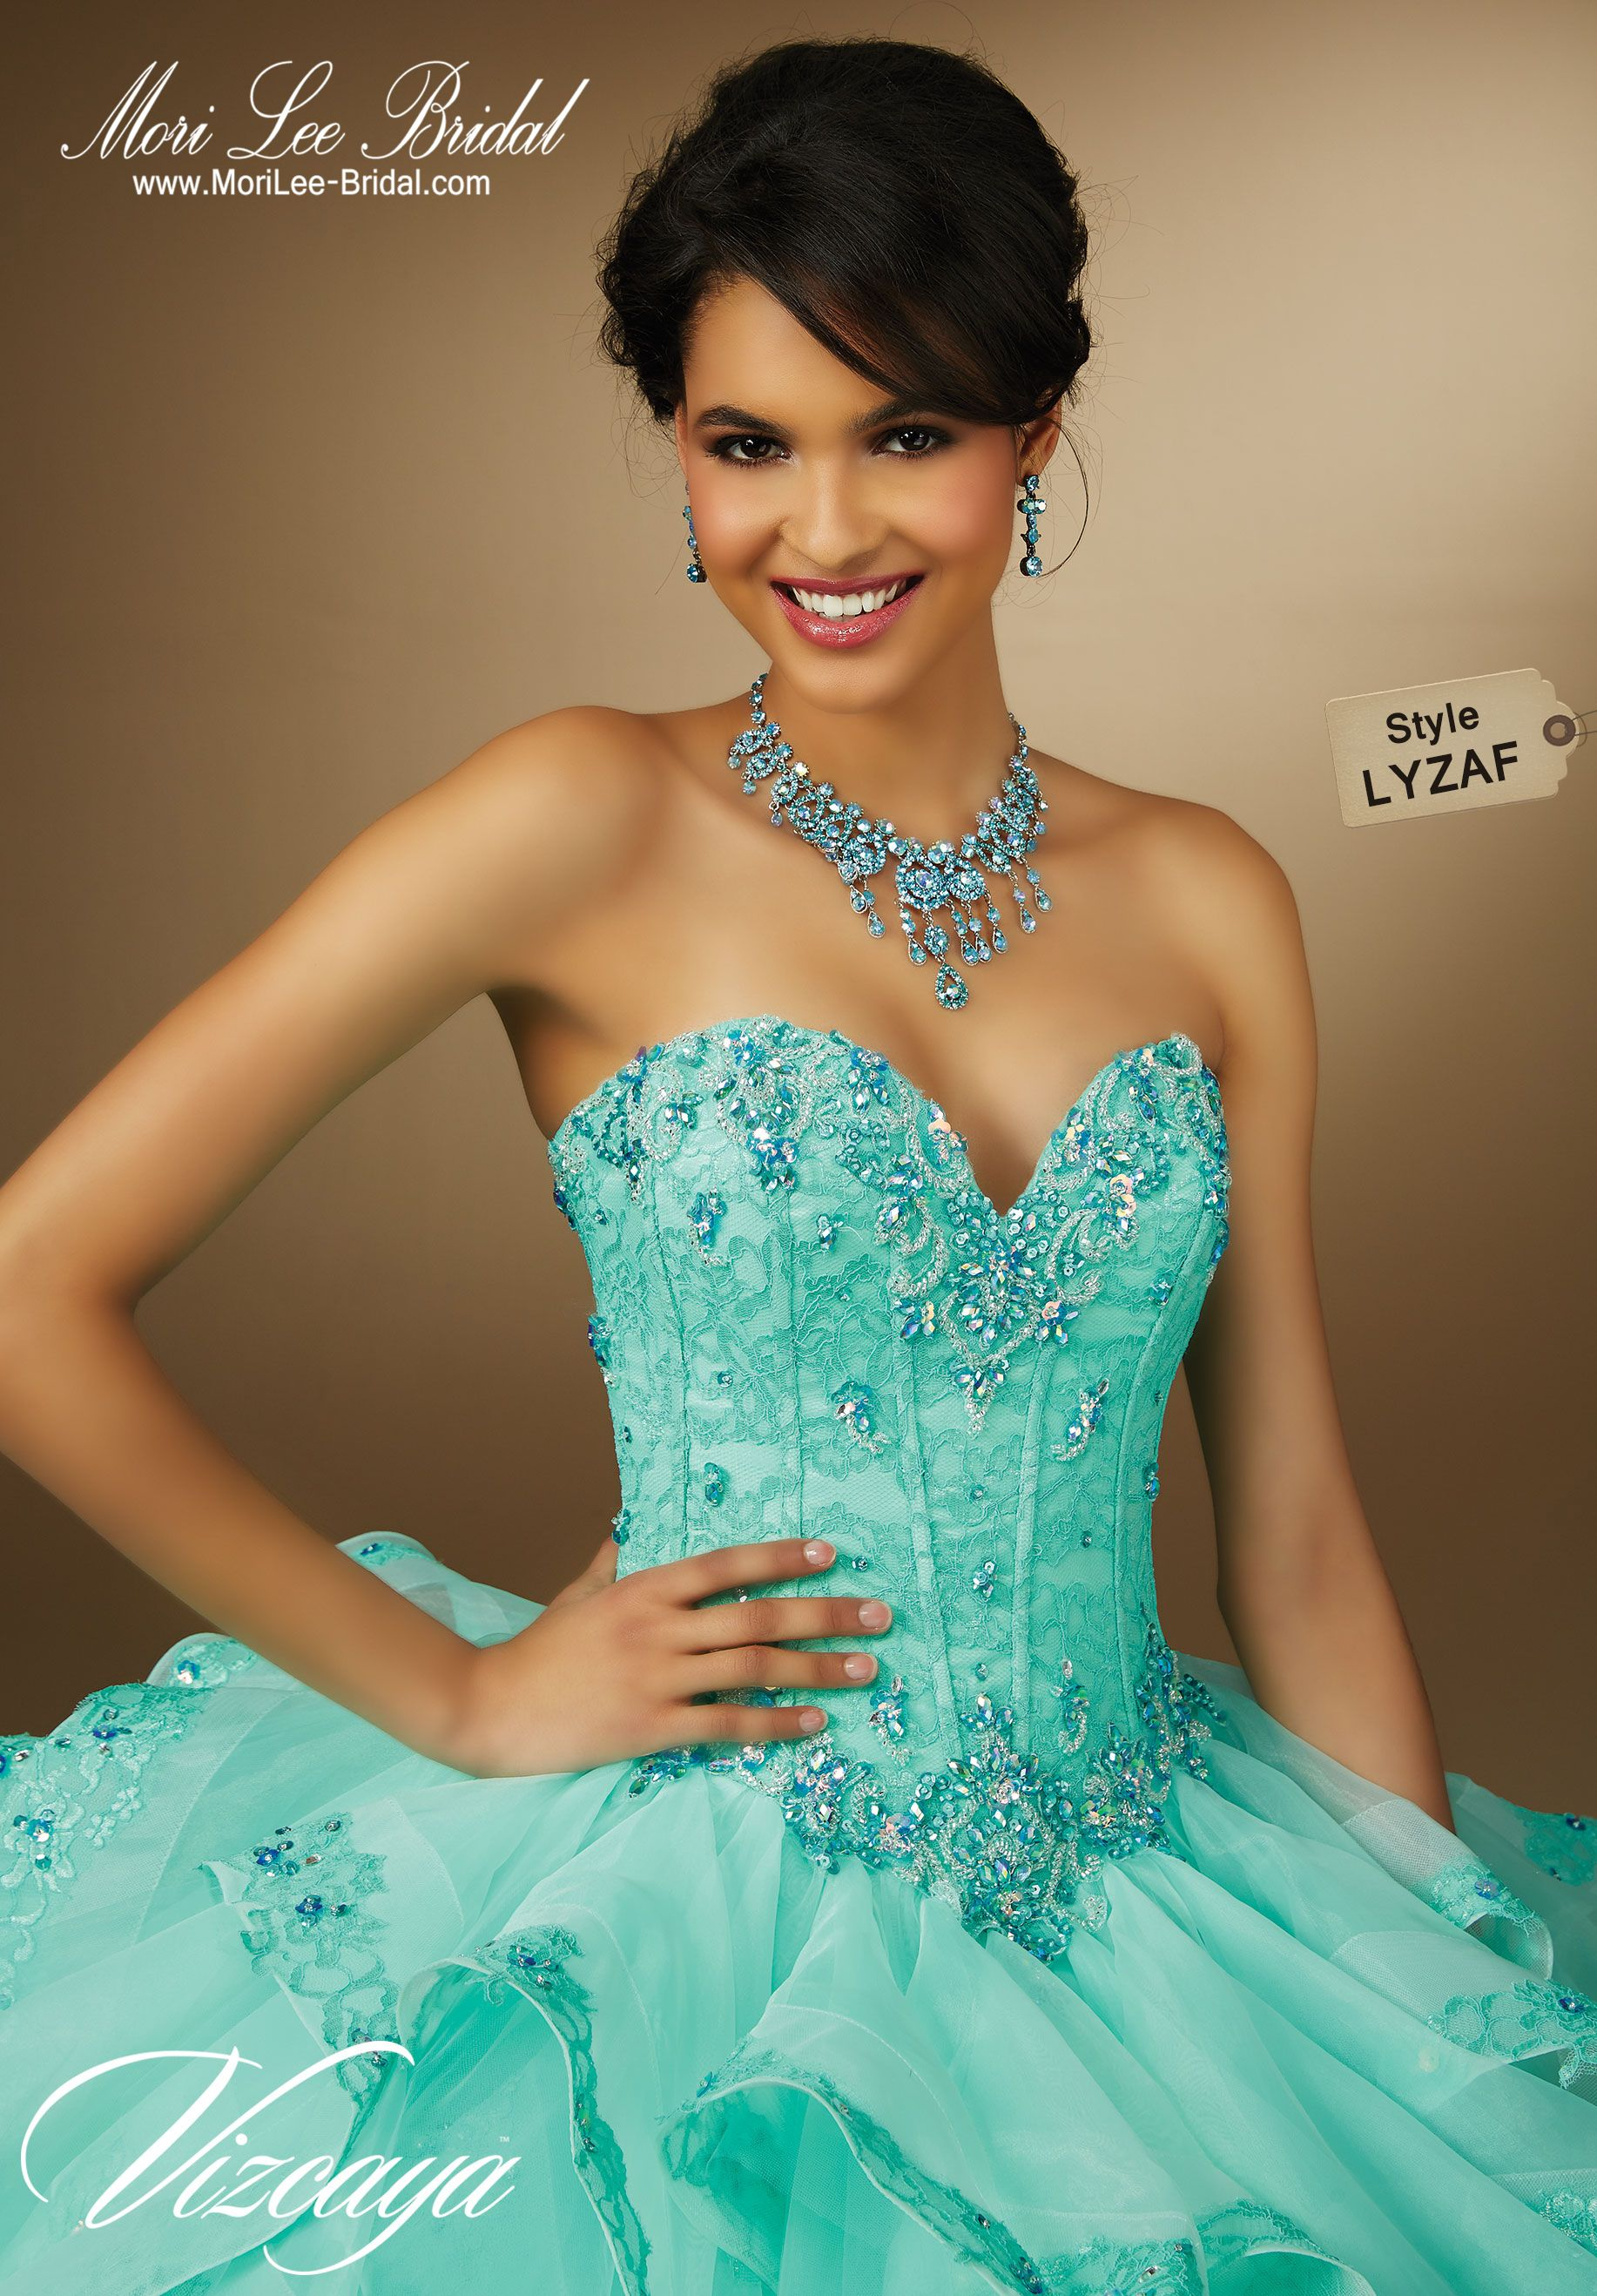 Style LYZAF EMBROIDERY AND BEADING ON LACE WITH RUFFLED ORGANZA ...